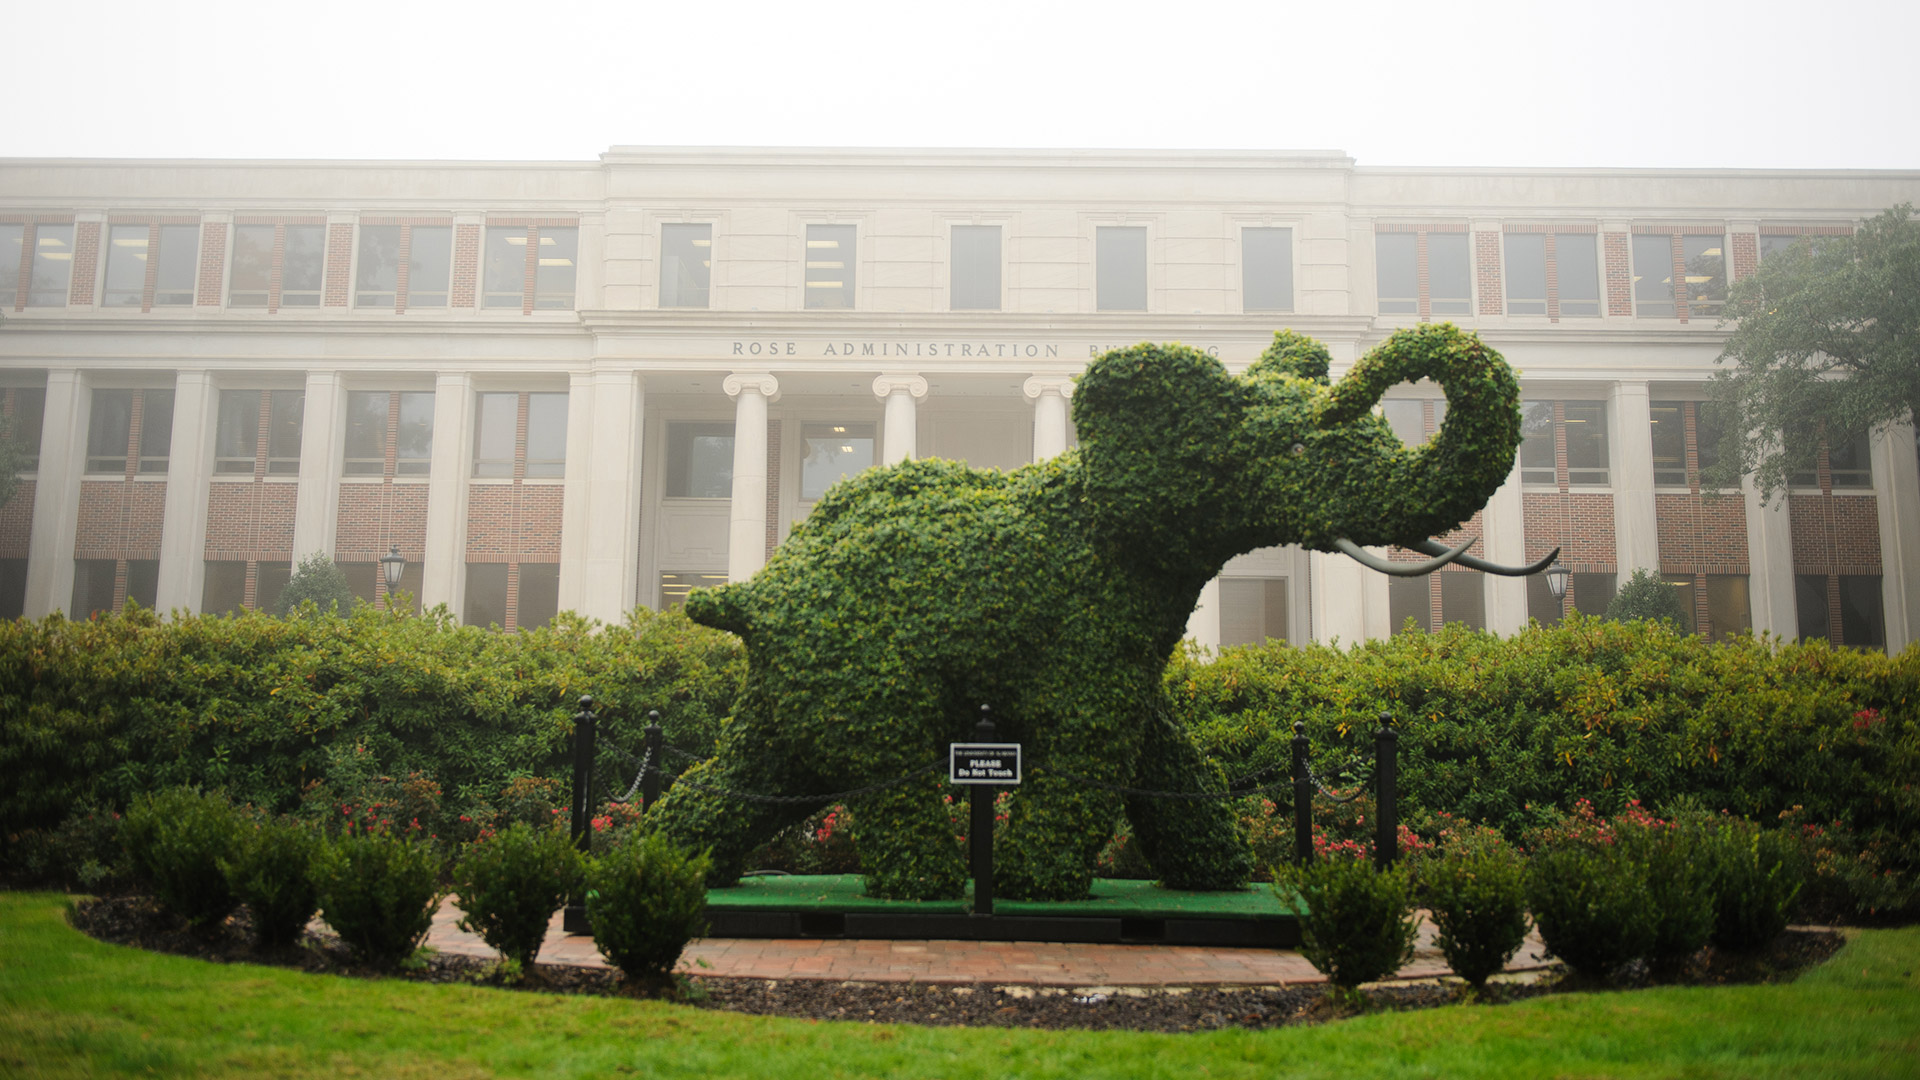 Plant covered elephant in front of Rose Administration Building